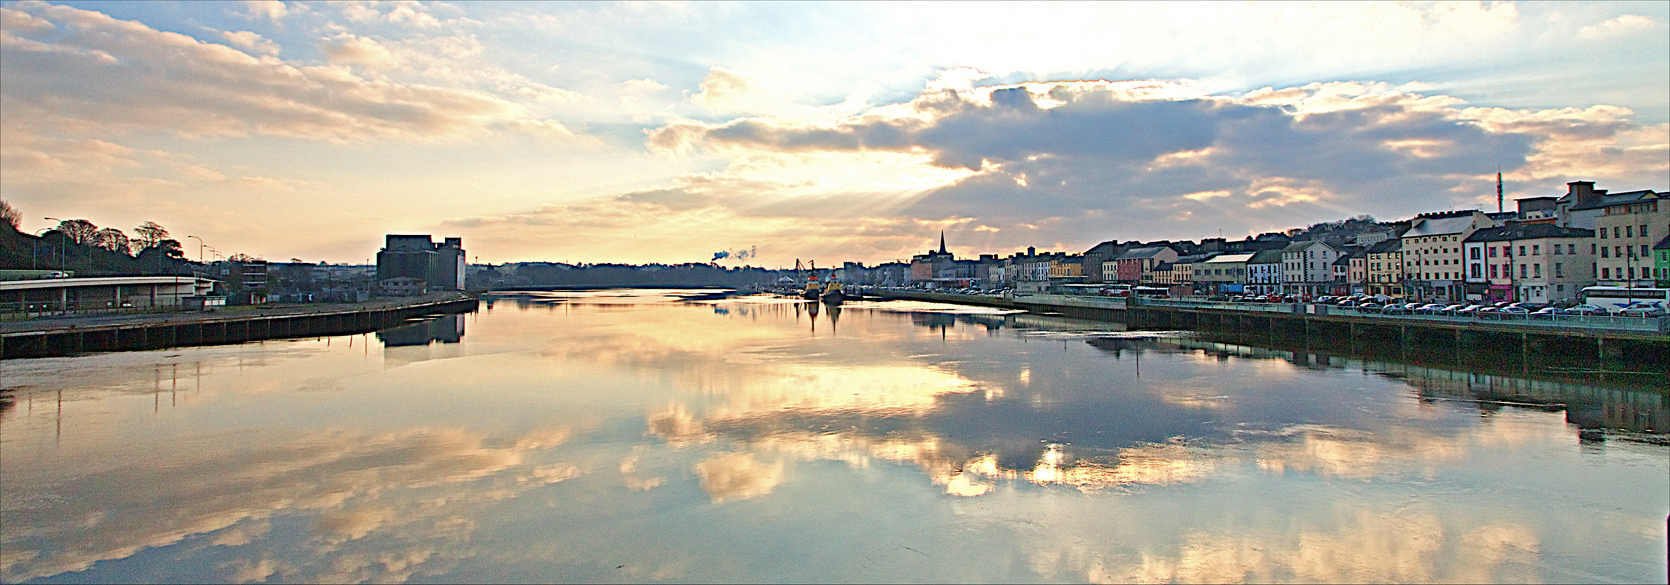 Photo of Waterford City - Picture of Waterford City in Early Morning as Sun Comes Up